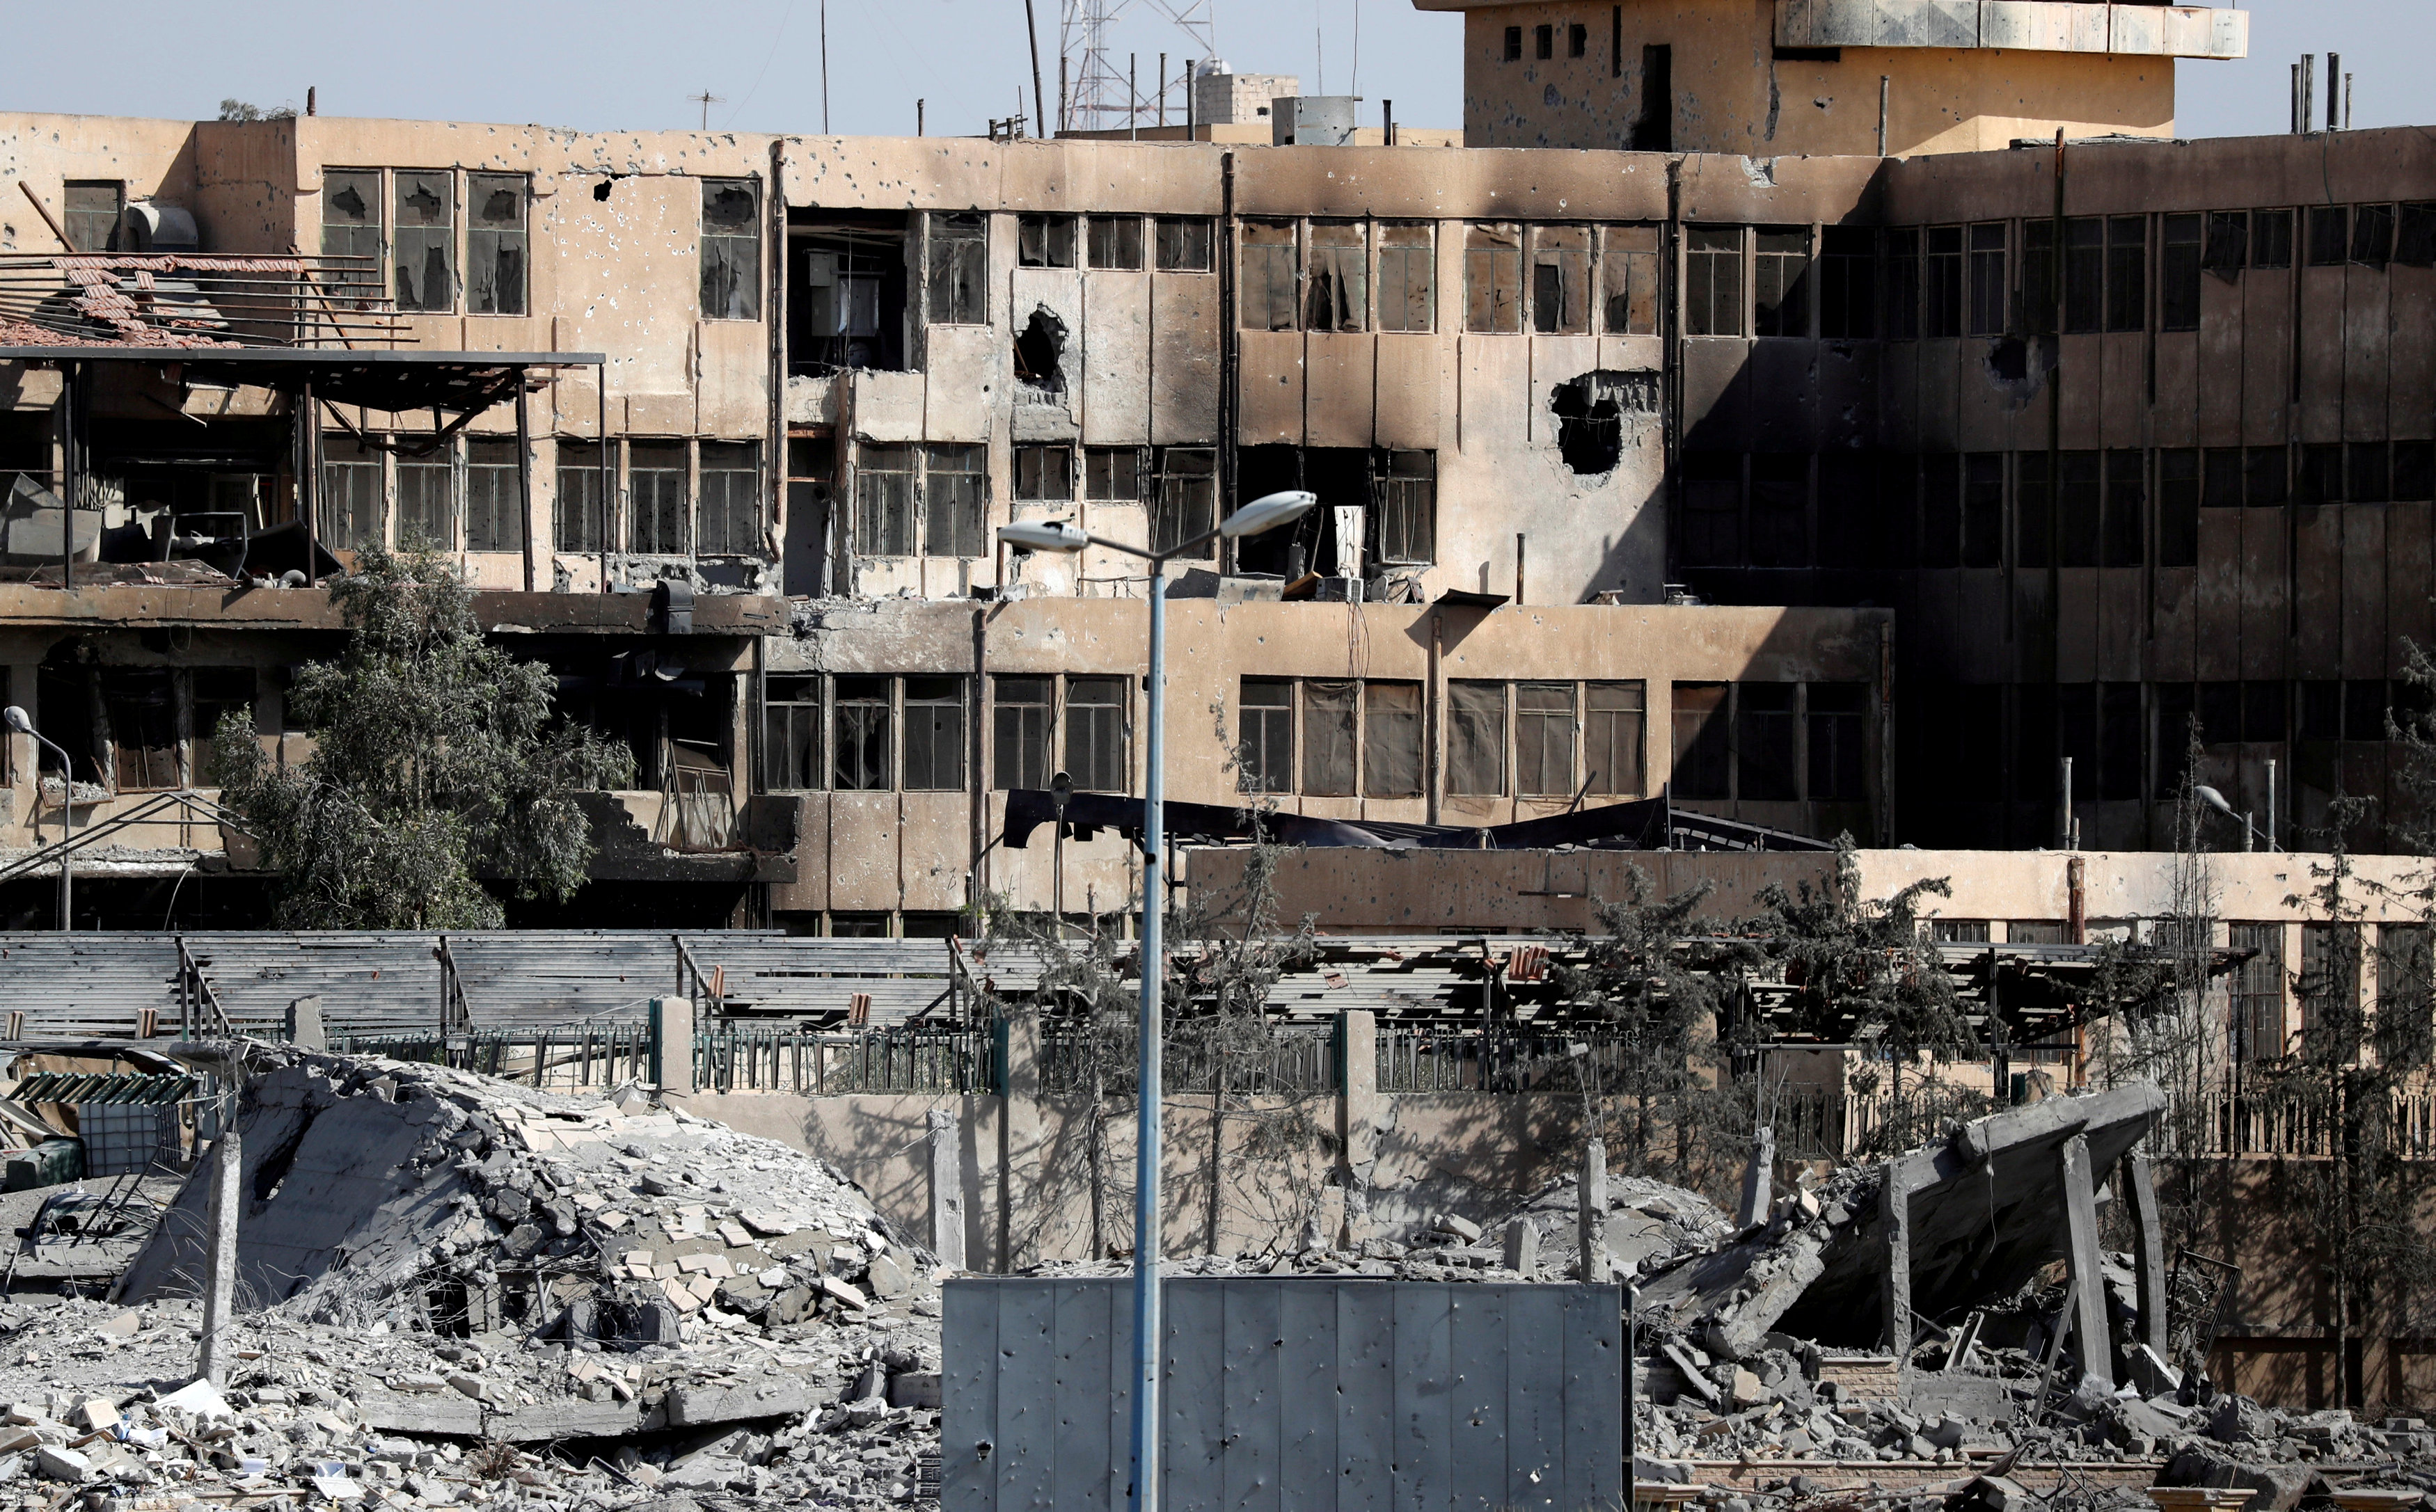 A view of Raqqa's National Hospital, last stronghold of the Islamic State militants, in Raqqa, Syria September 30, 2017. REUTERS/Erik De Castro